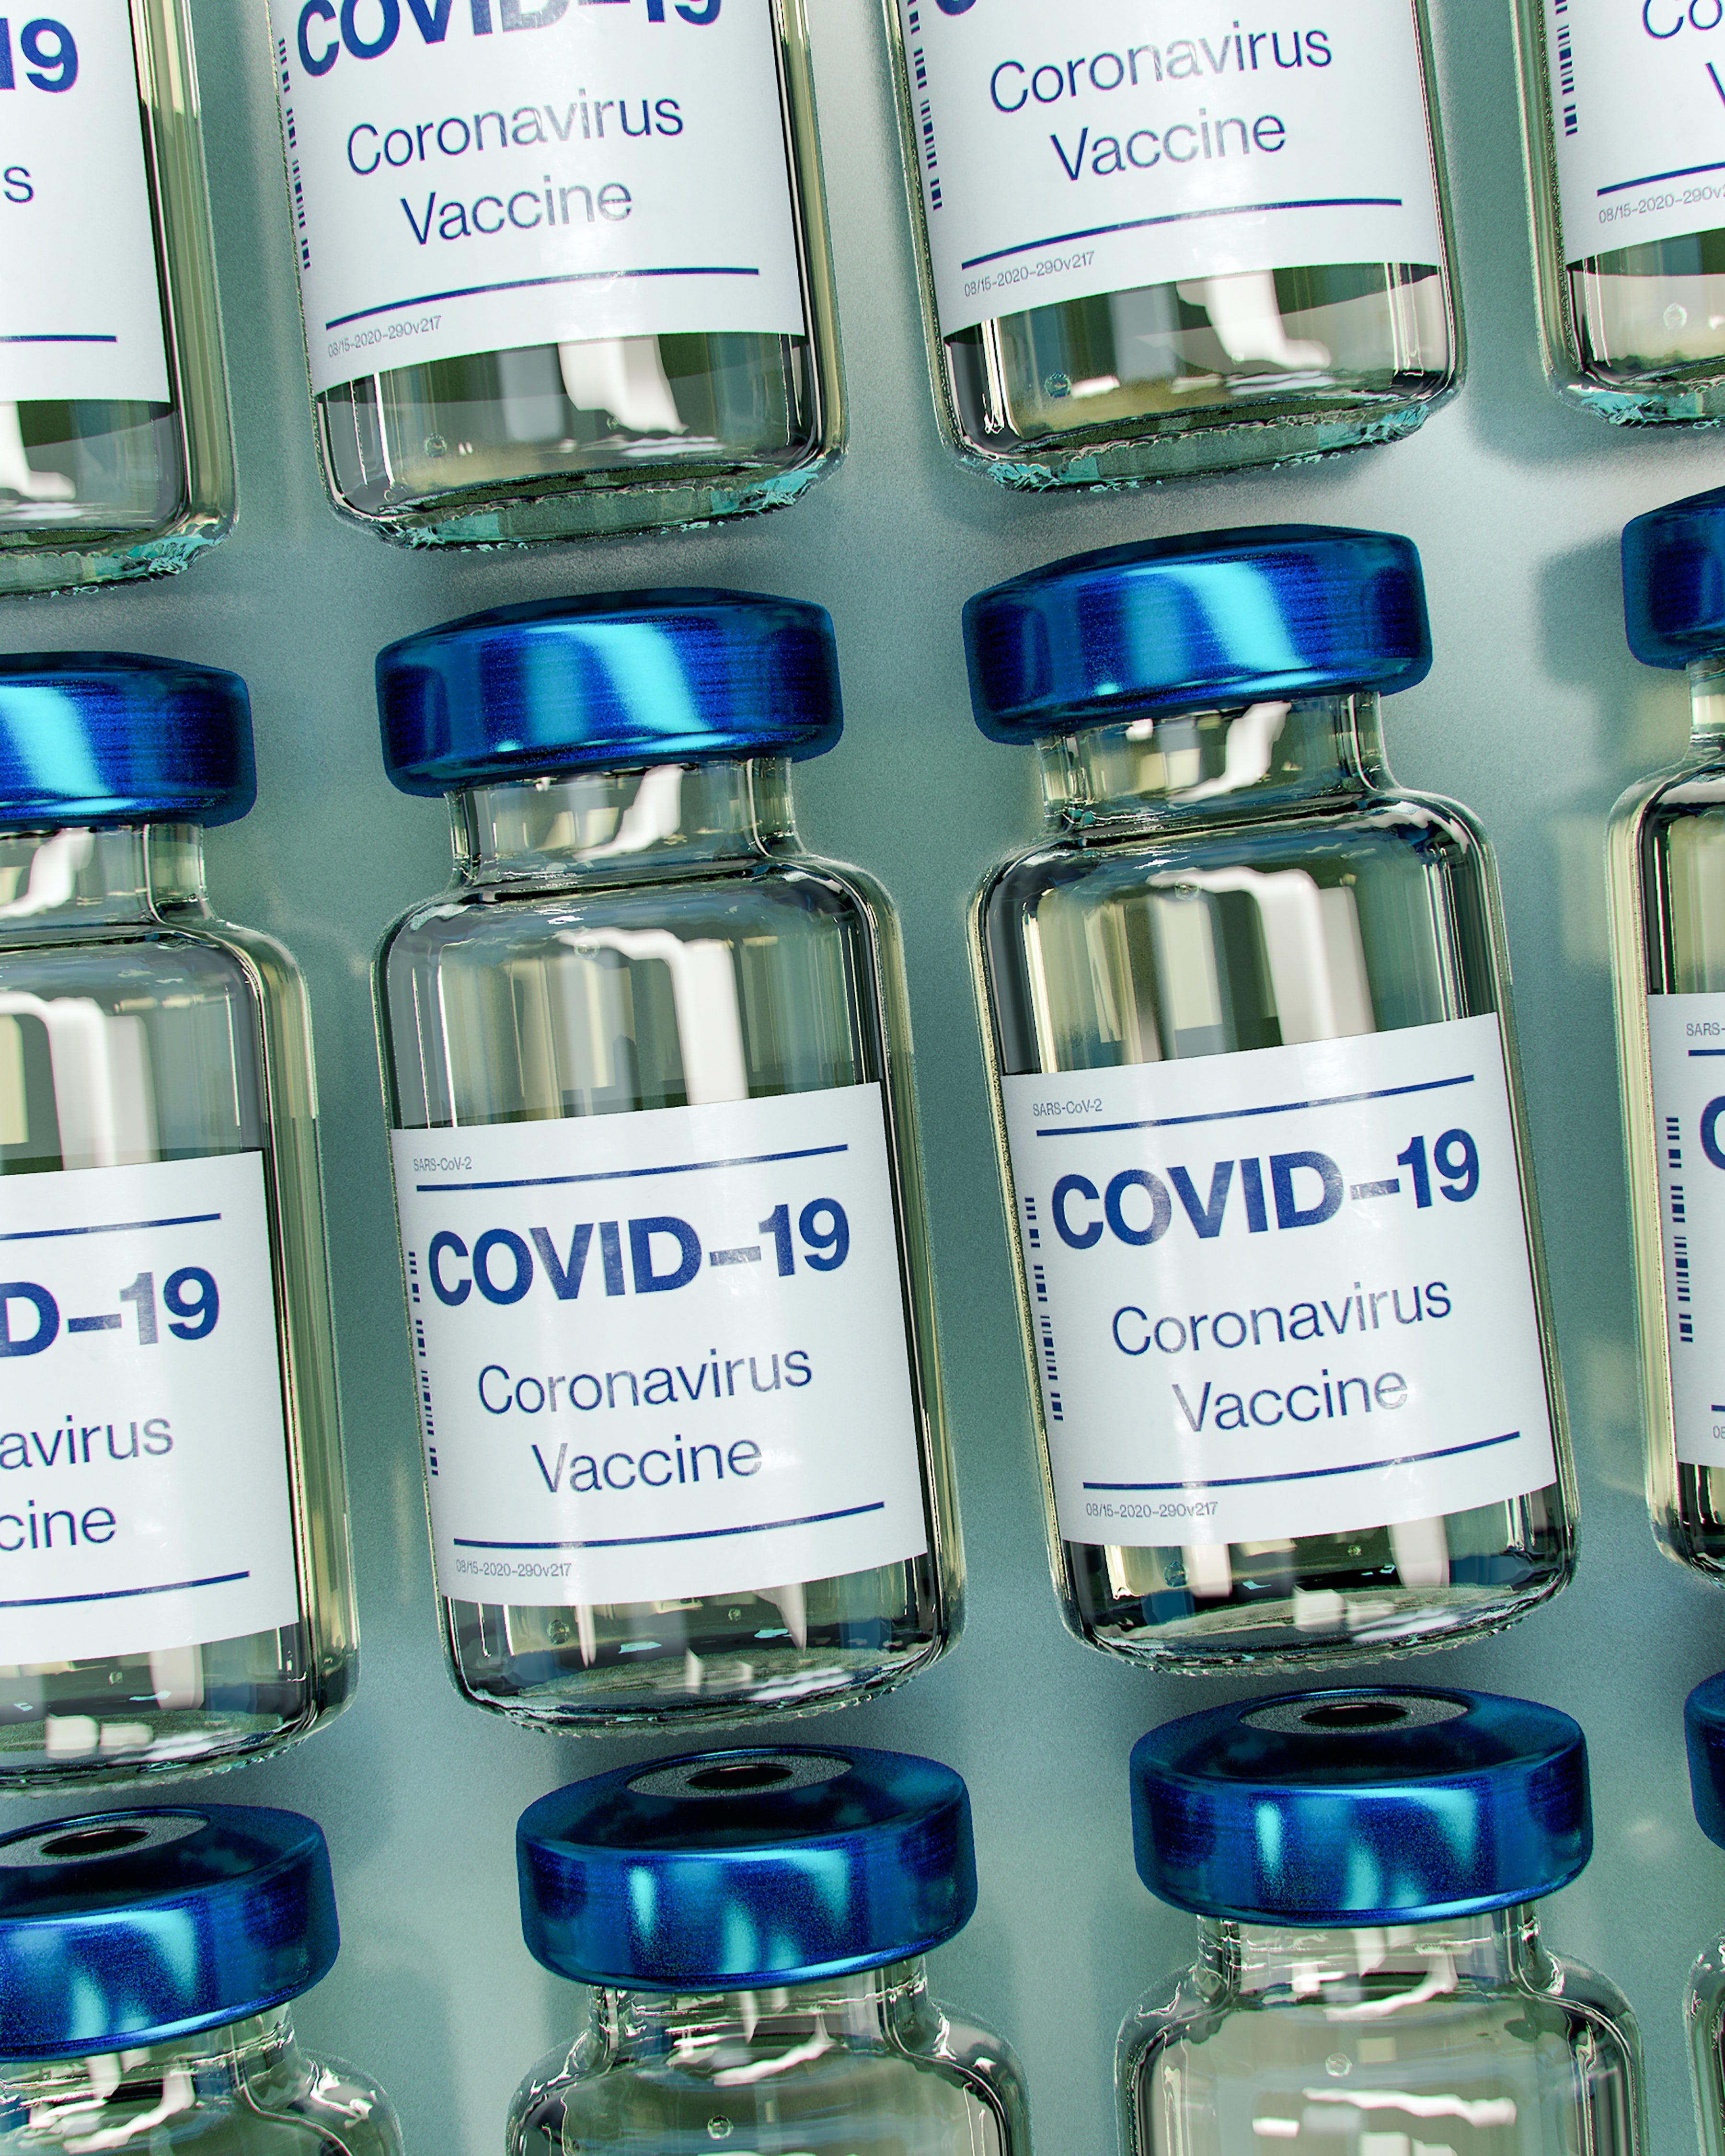 COVID-19 Vaccine Intellectual Property | Cybersecurity Solutions | The Cyber Review